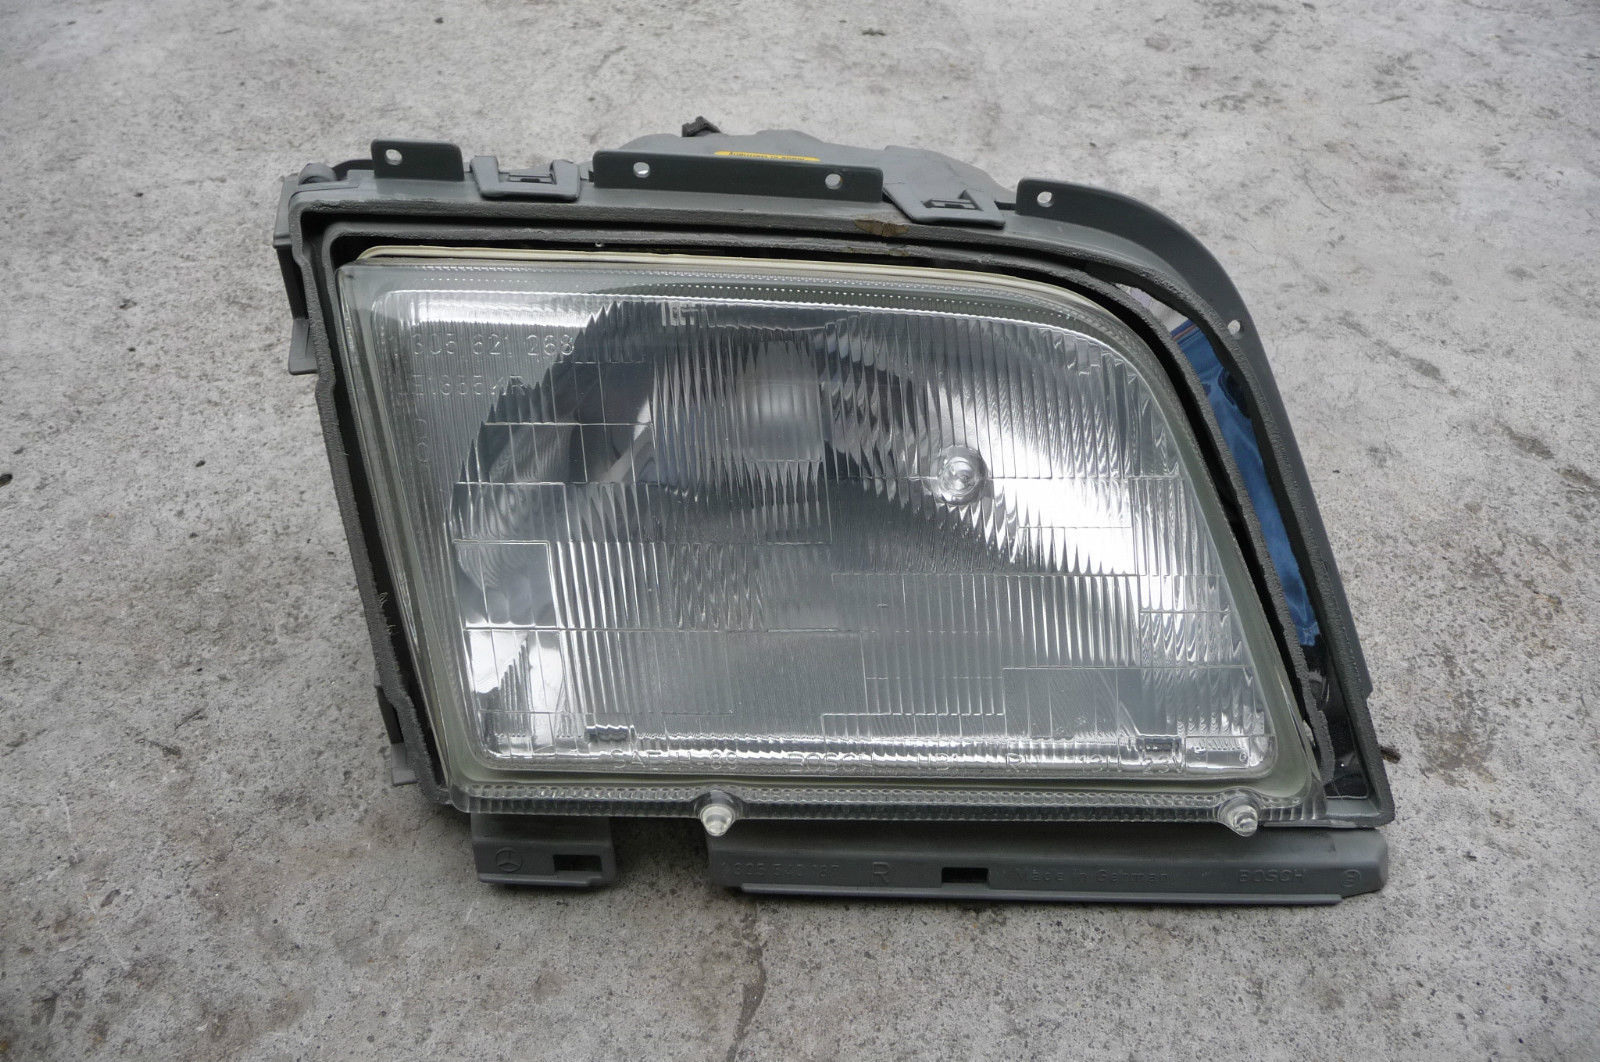 Mercedes Benz SL Class Headlight Lamp Right RH BOSCH no Blinker 0302463012 OEM